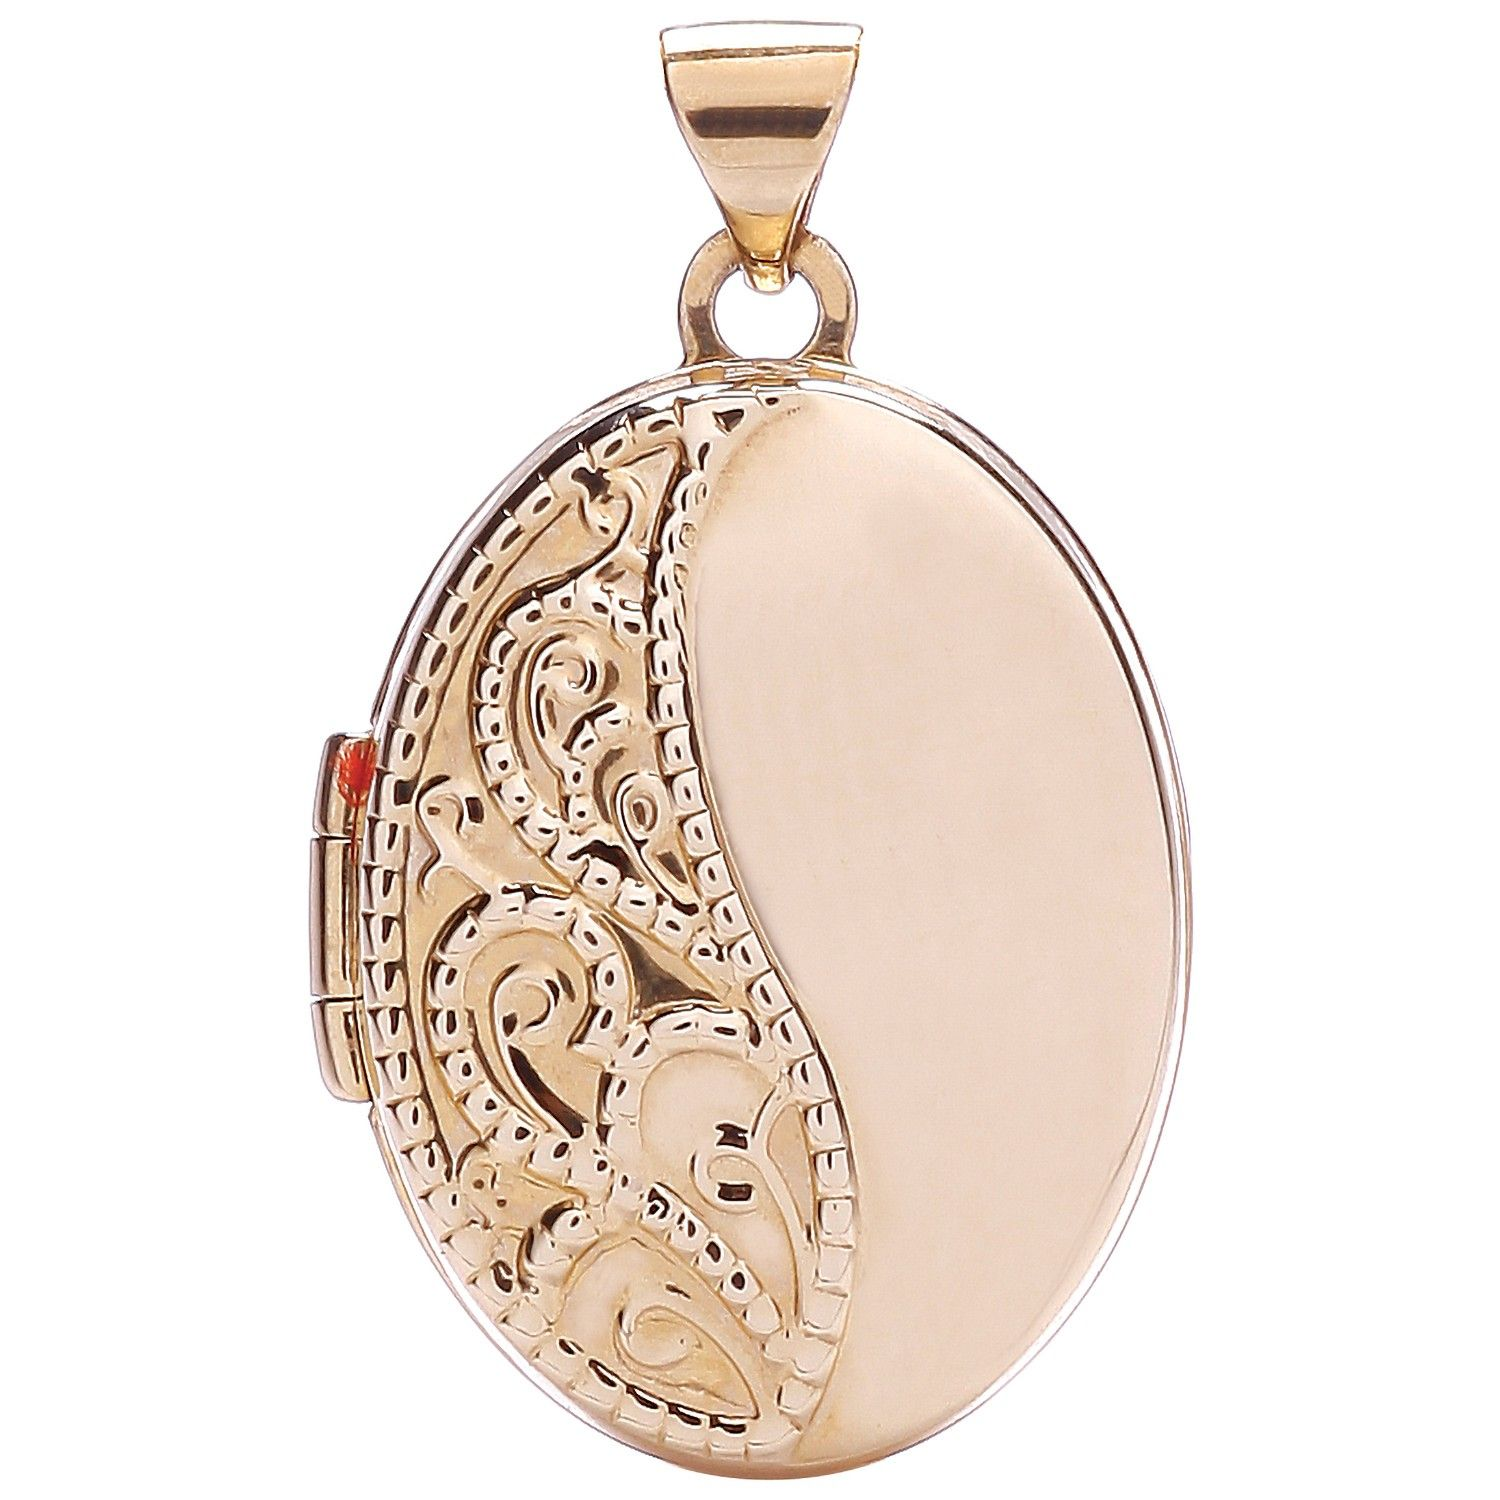 9ct Gold Oval Shaped Locket Gold